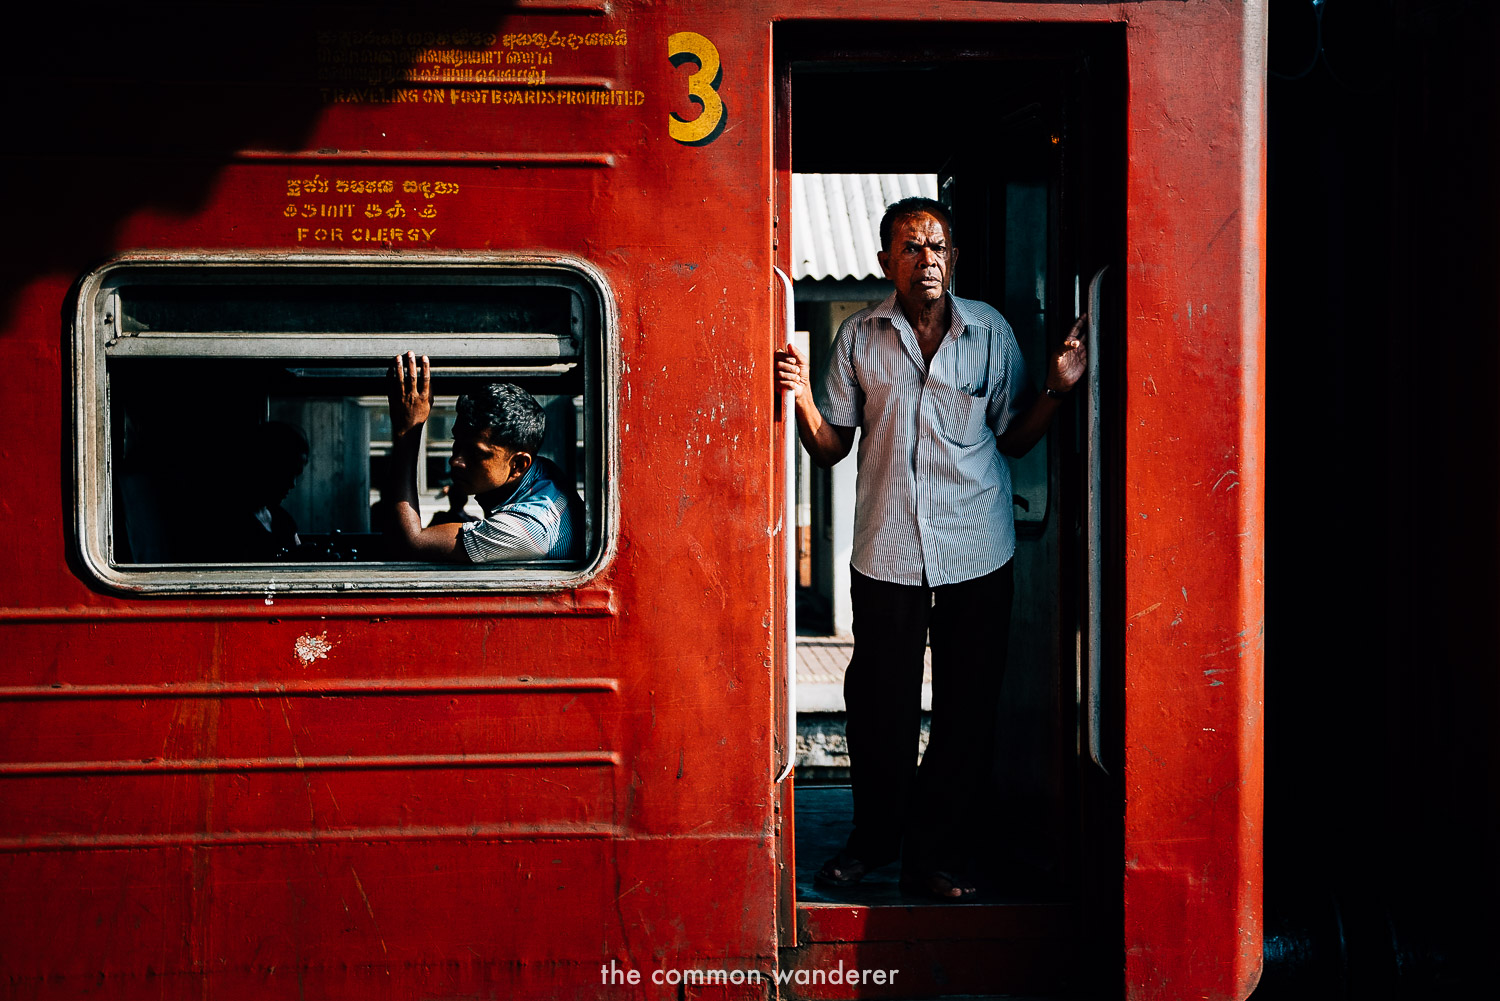 Top sri lanka travel tips include taking the local trains